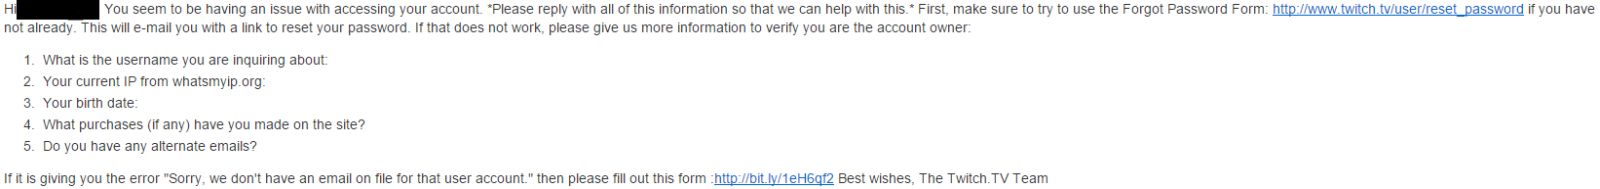 Twitch password reset email verification not working